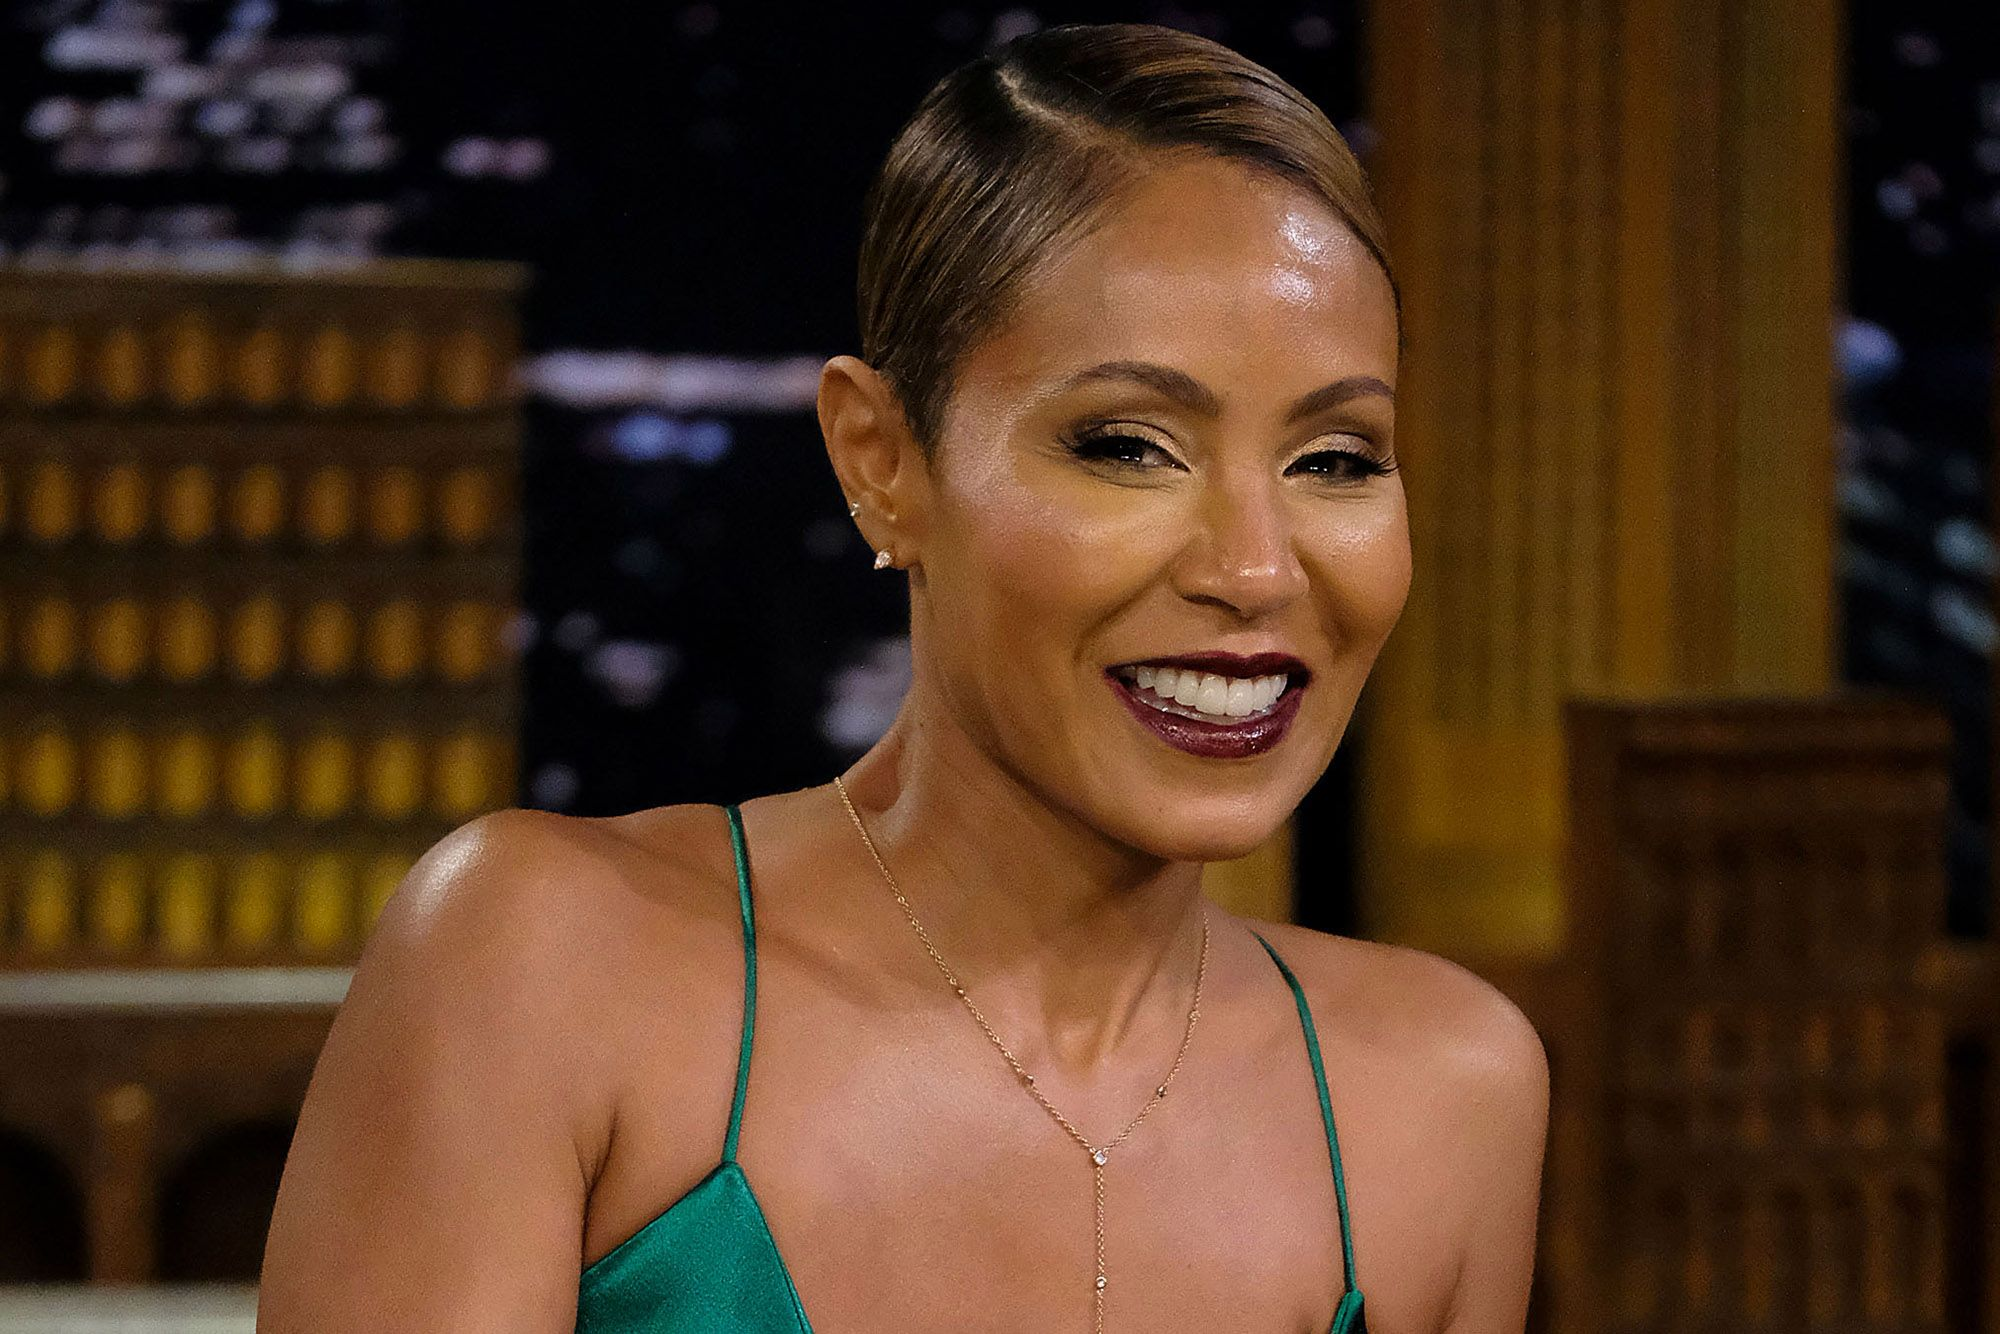 jada-pinkett-smith-praises-toni-braxton-see-her-message-and-video